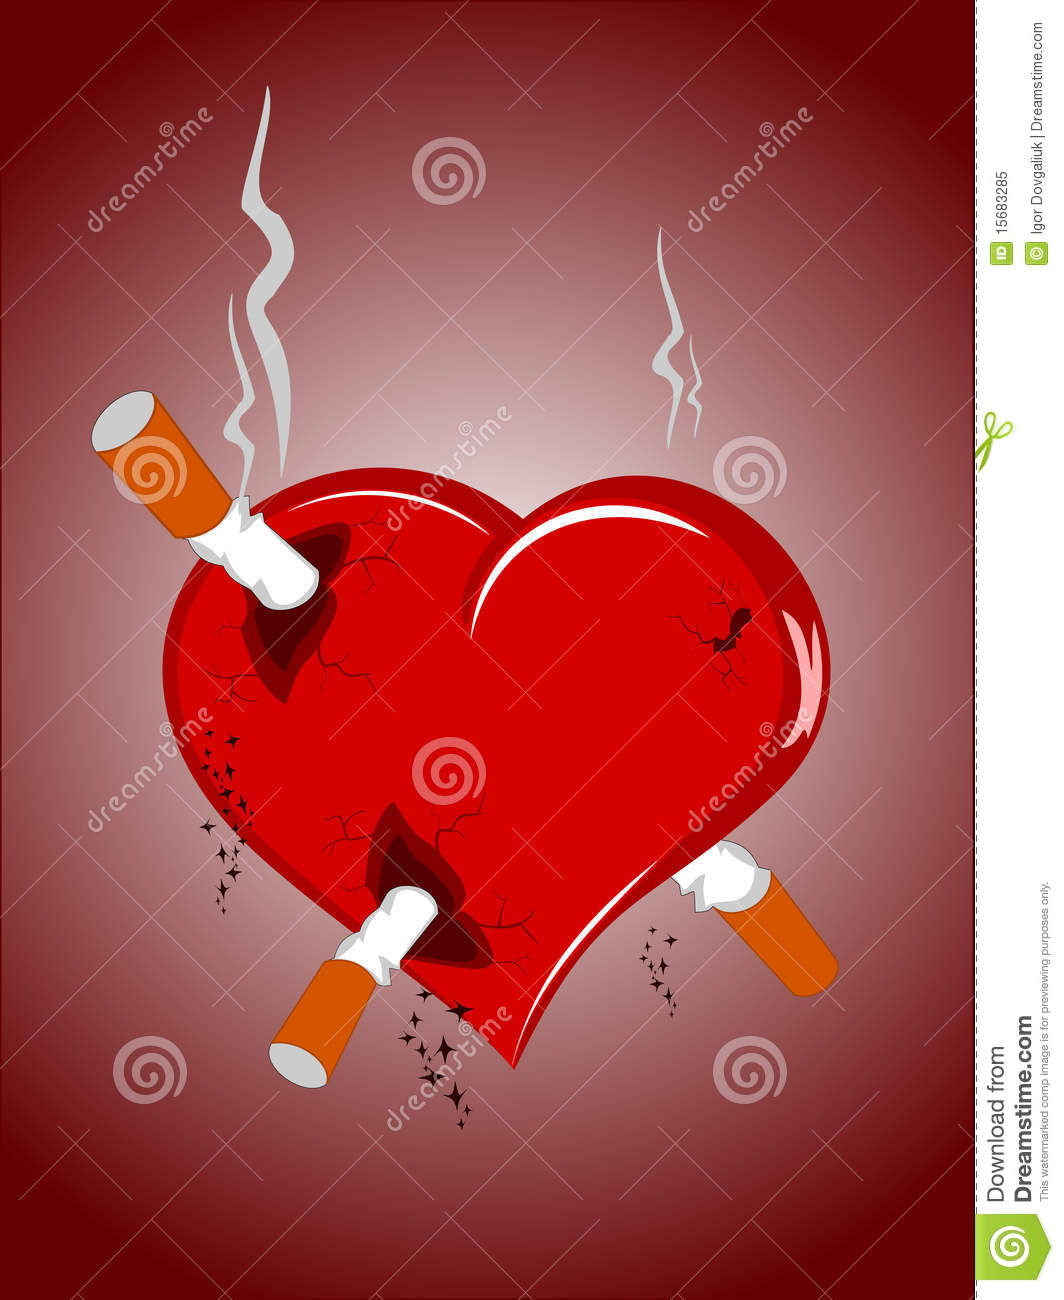 coeur avec des cigarettes photo libre de droits image 15683285. Black Bedroom Furniture Sets. Home Design Ideas